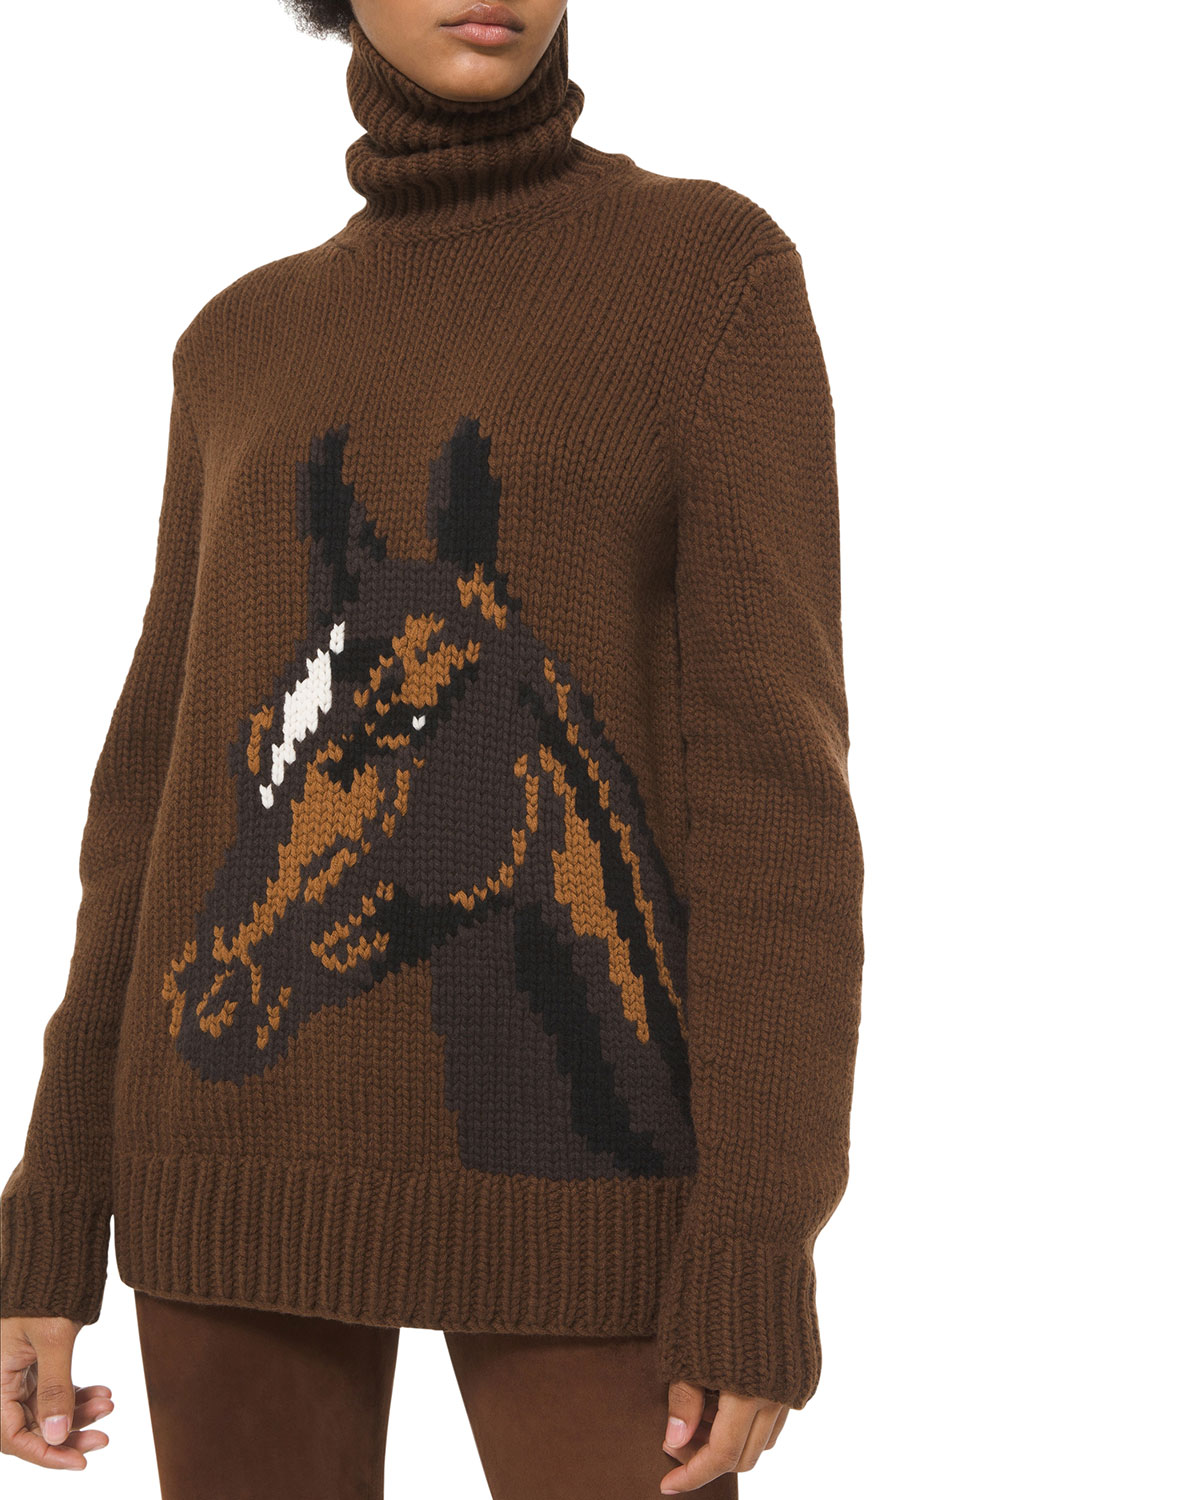 Michael Kors Collection Pony Cashmere Turtleneck Sweater